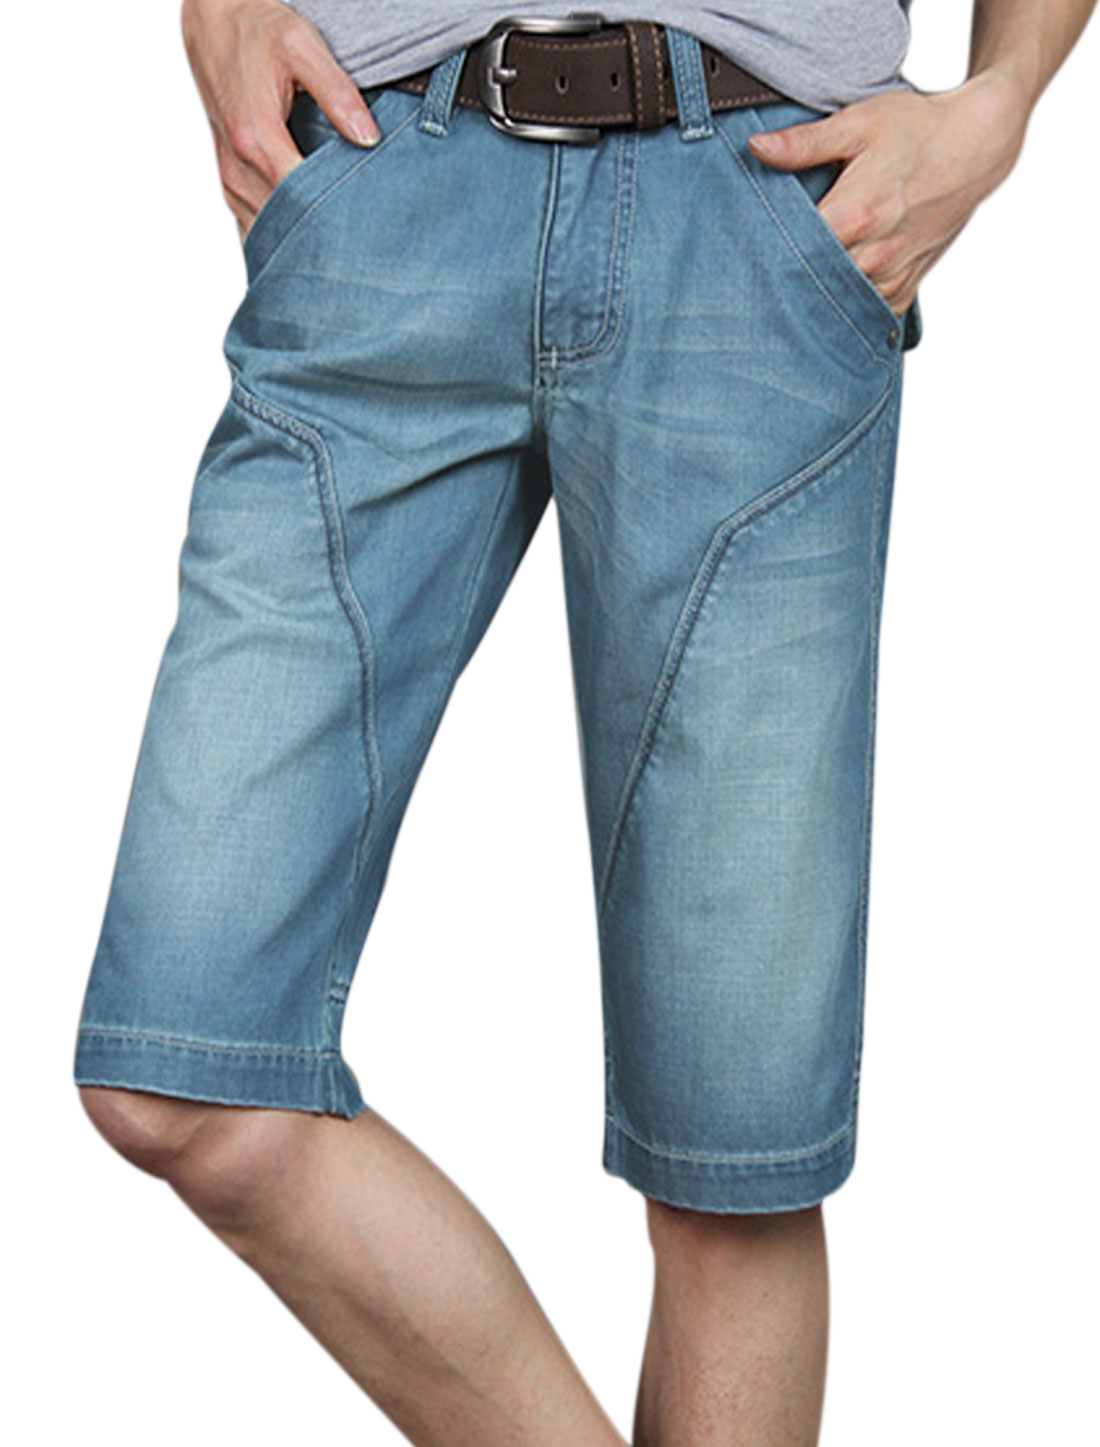 Men Front Hip Pockets Belt Loop Panel Zip Fly Denim Shorts Blue W34